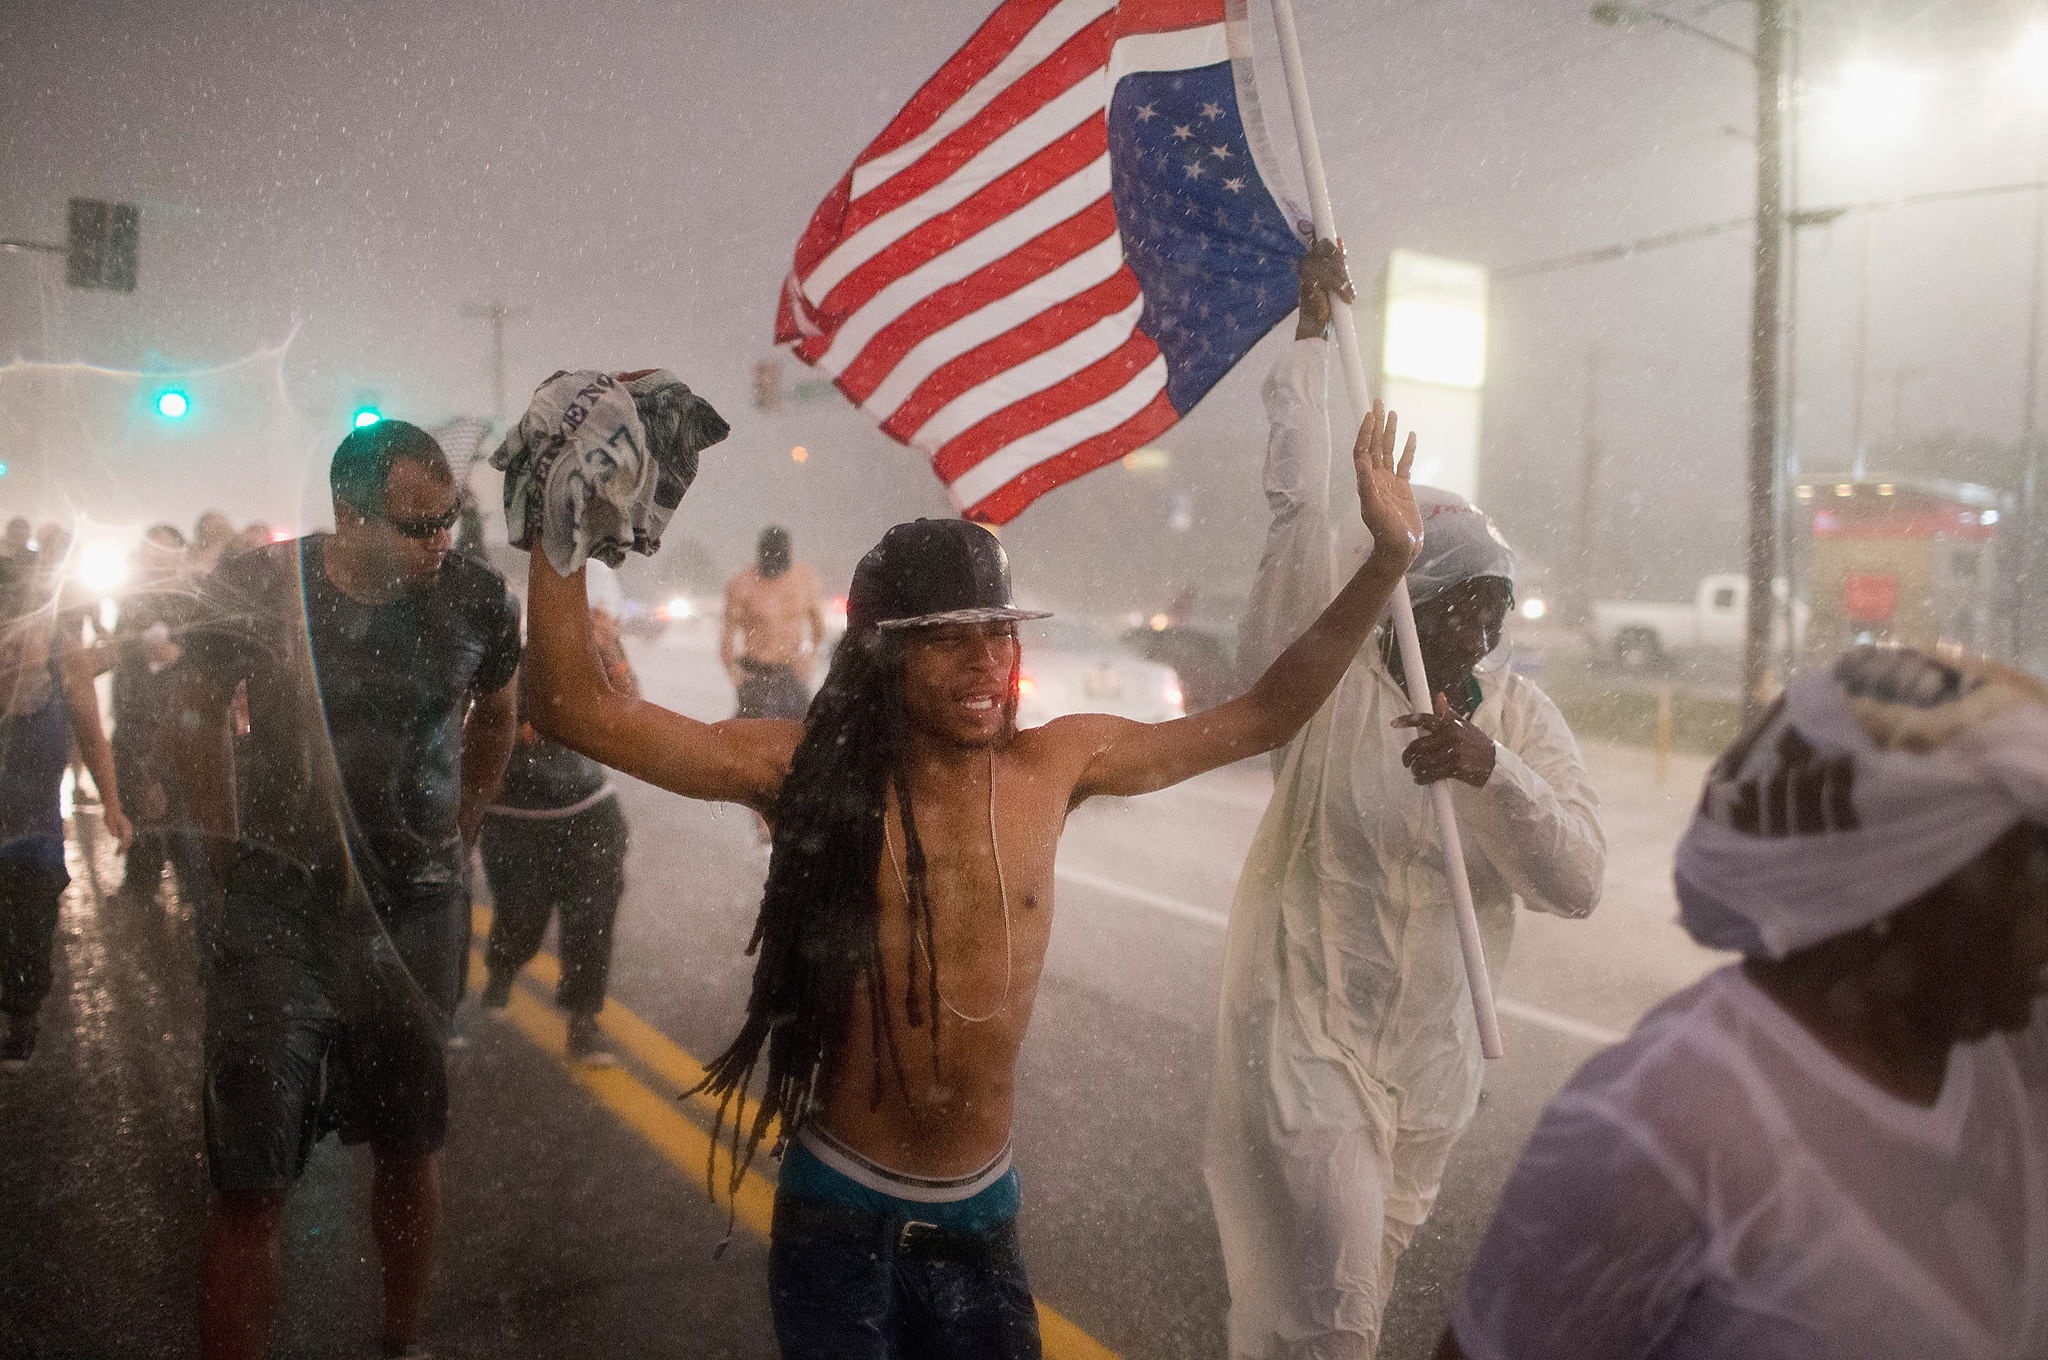 Ferguson, Missouri Marks One-Year Anniversary Of The Death Of Michael Brown...FERGUSON, MO - AUGUST 09:  Demonstrators, marking the one-year anniversary of the shooting of Michael Brown, march along West Florrisant Street in a driving rain on August 9, 2015 in Ferguson, Missouri. There are reports that two people were shot when gun fire broke out during protests later in the evening. Brown was shot and killed by a Ferguson police officer on August 9, 2014. His death sparked months of sometimes violent protests in Ferguson and drew nationwide focus on police treatment of black offenders.  (Photo by Scott Olson/Getty Images)